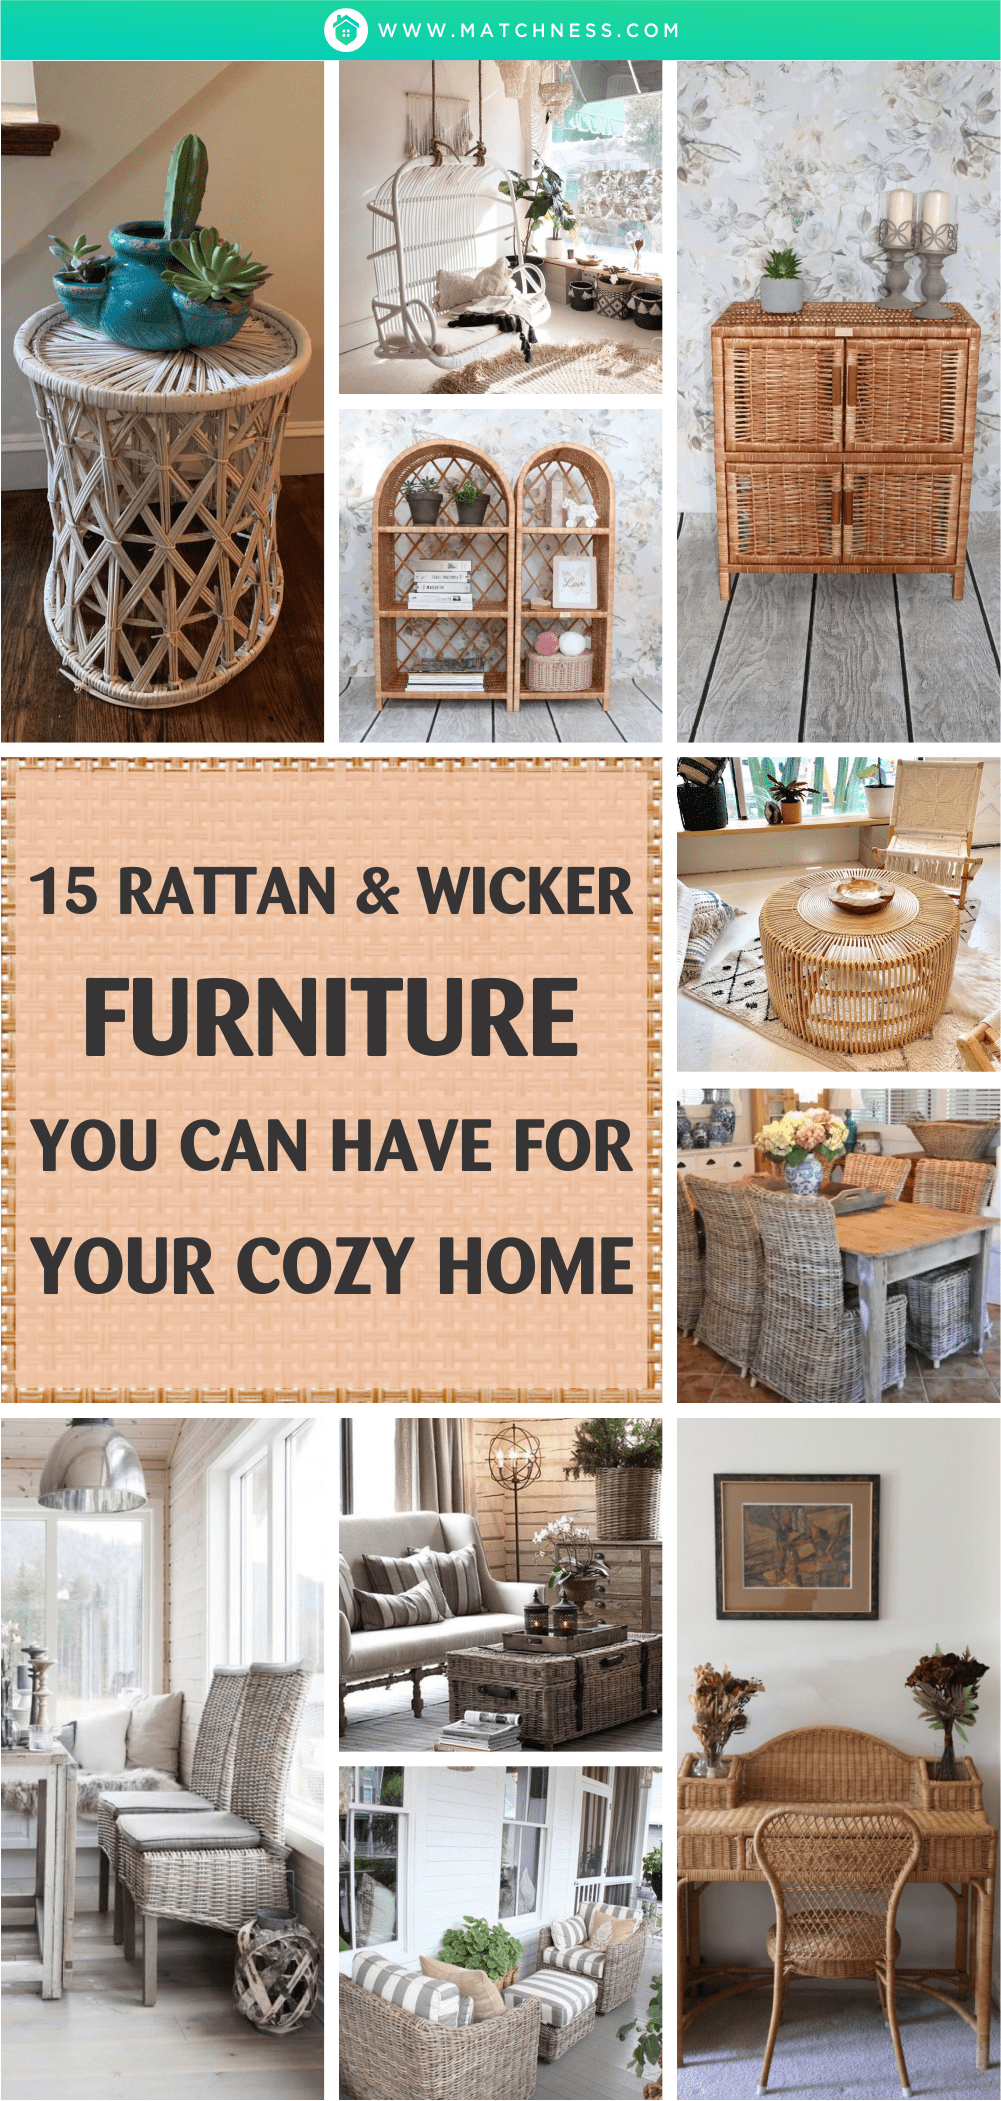 15-rattan-and-wicker-furniture-you-can-have-for-your-cozy-home1